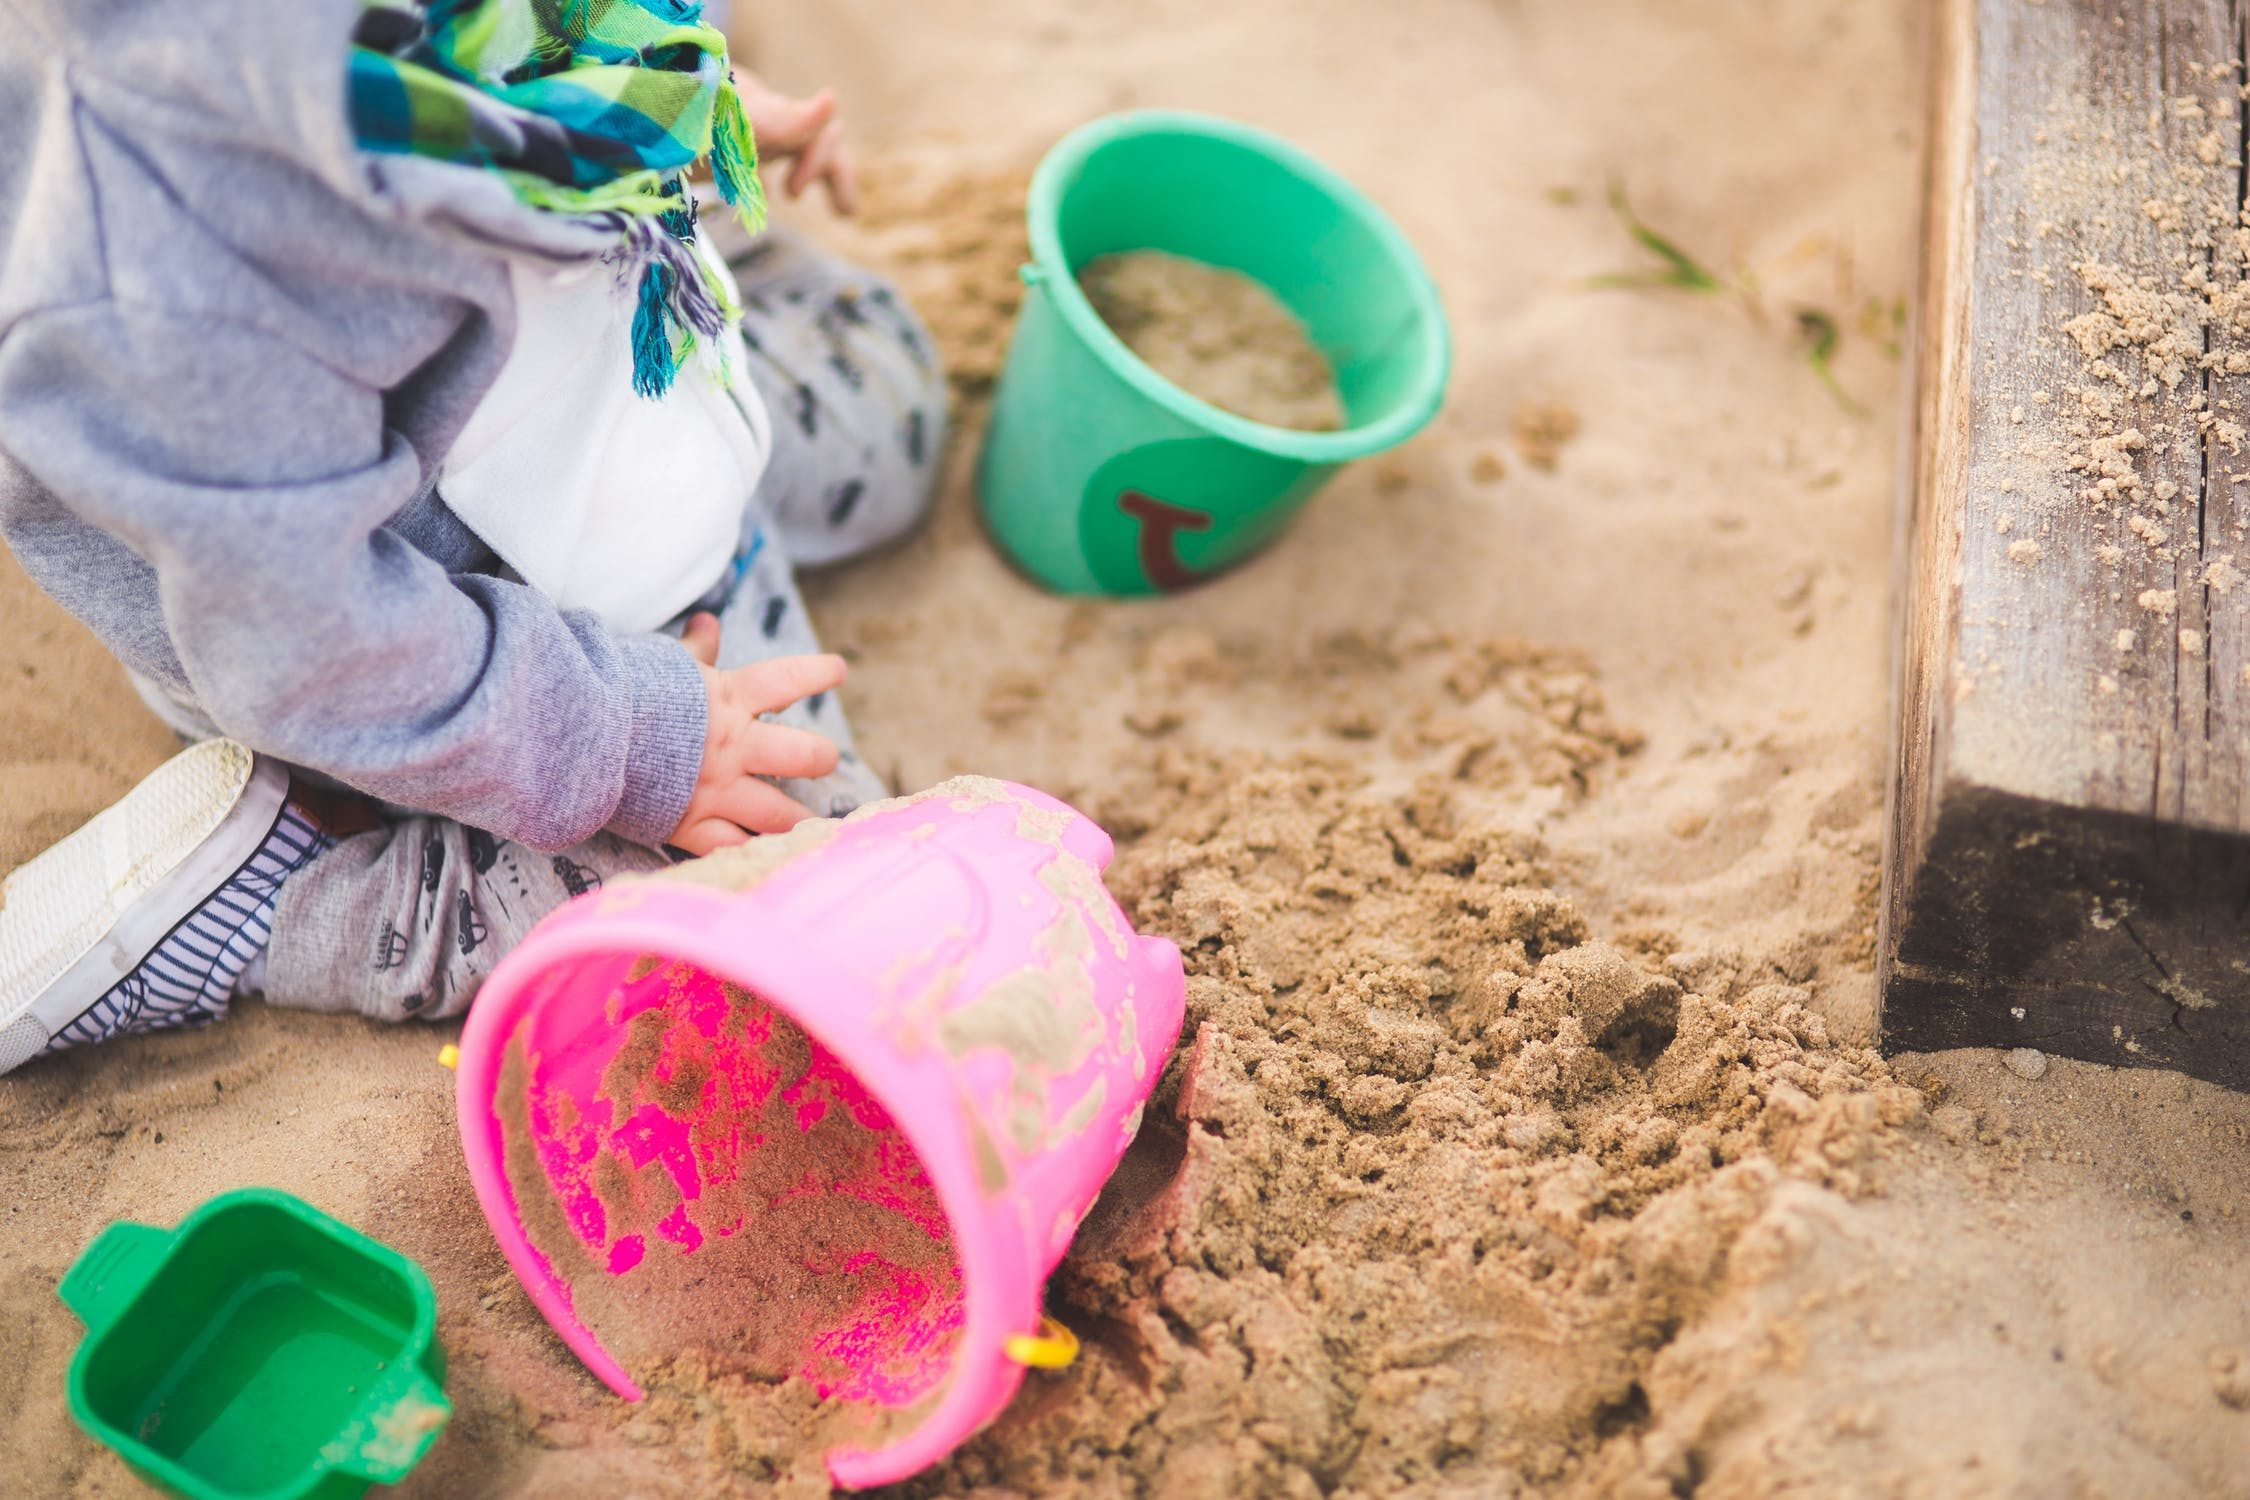 Toddler playing in a sandpit